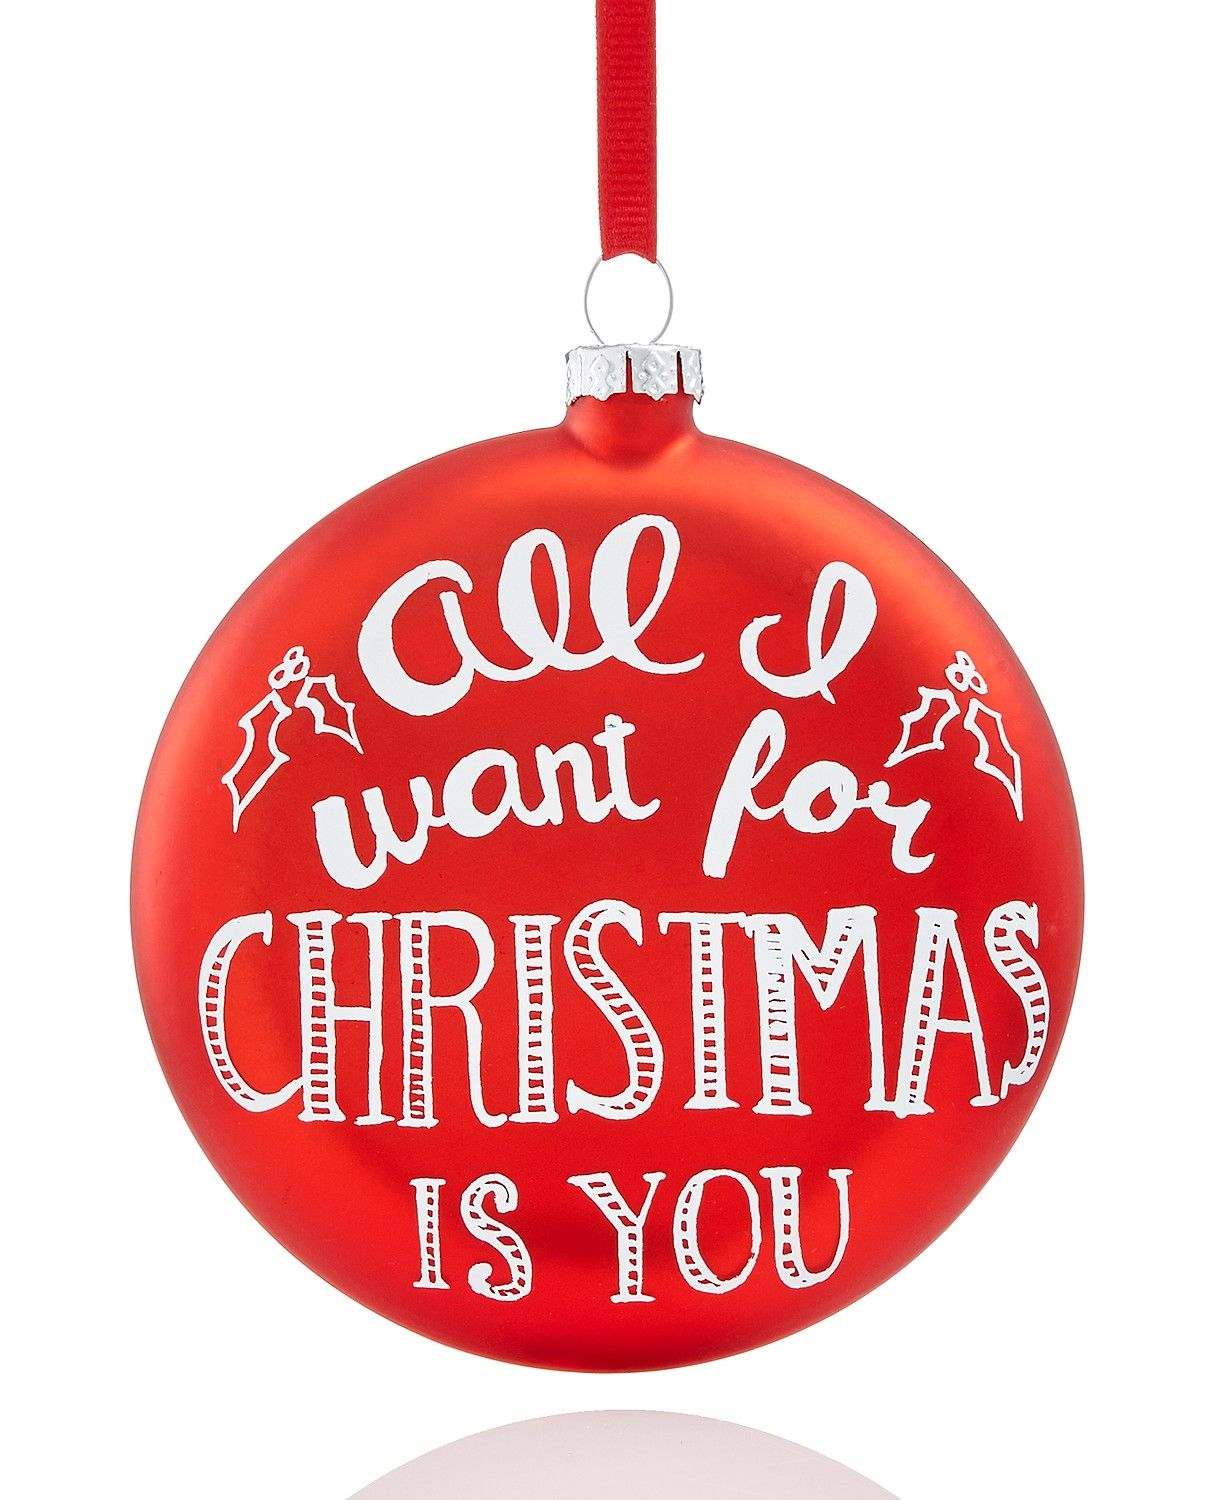 All I want for Christmas is you glass Christmas ornament